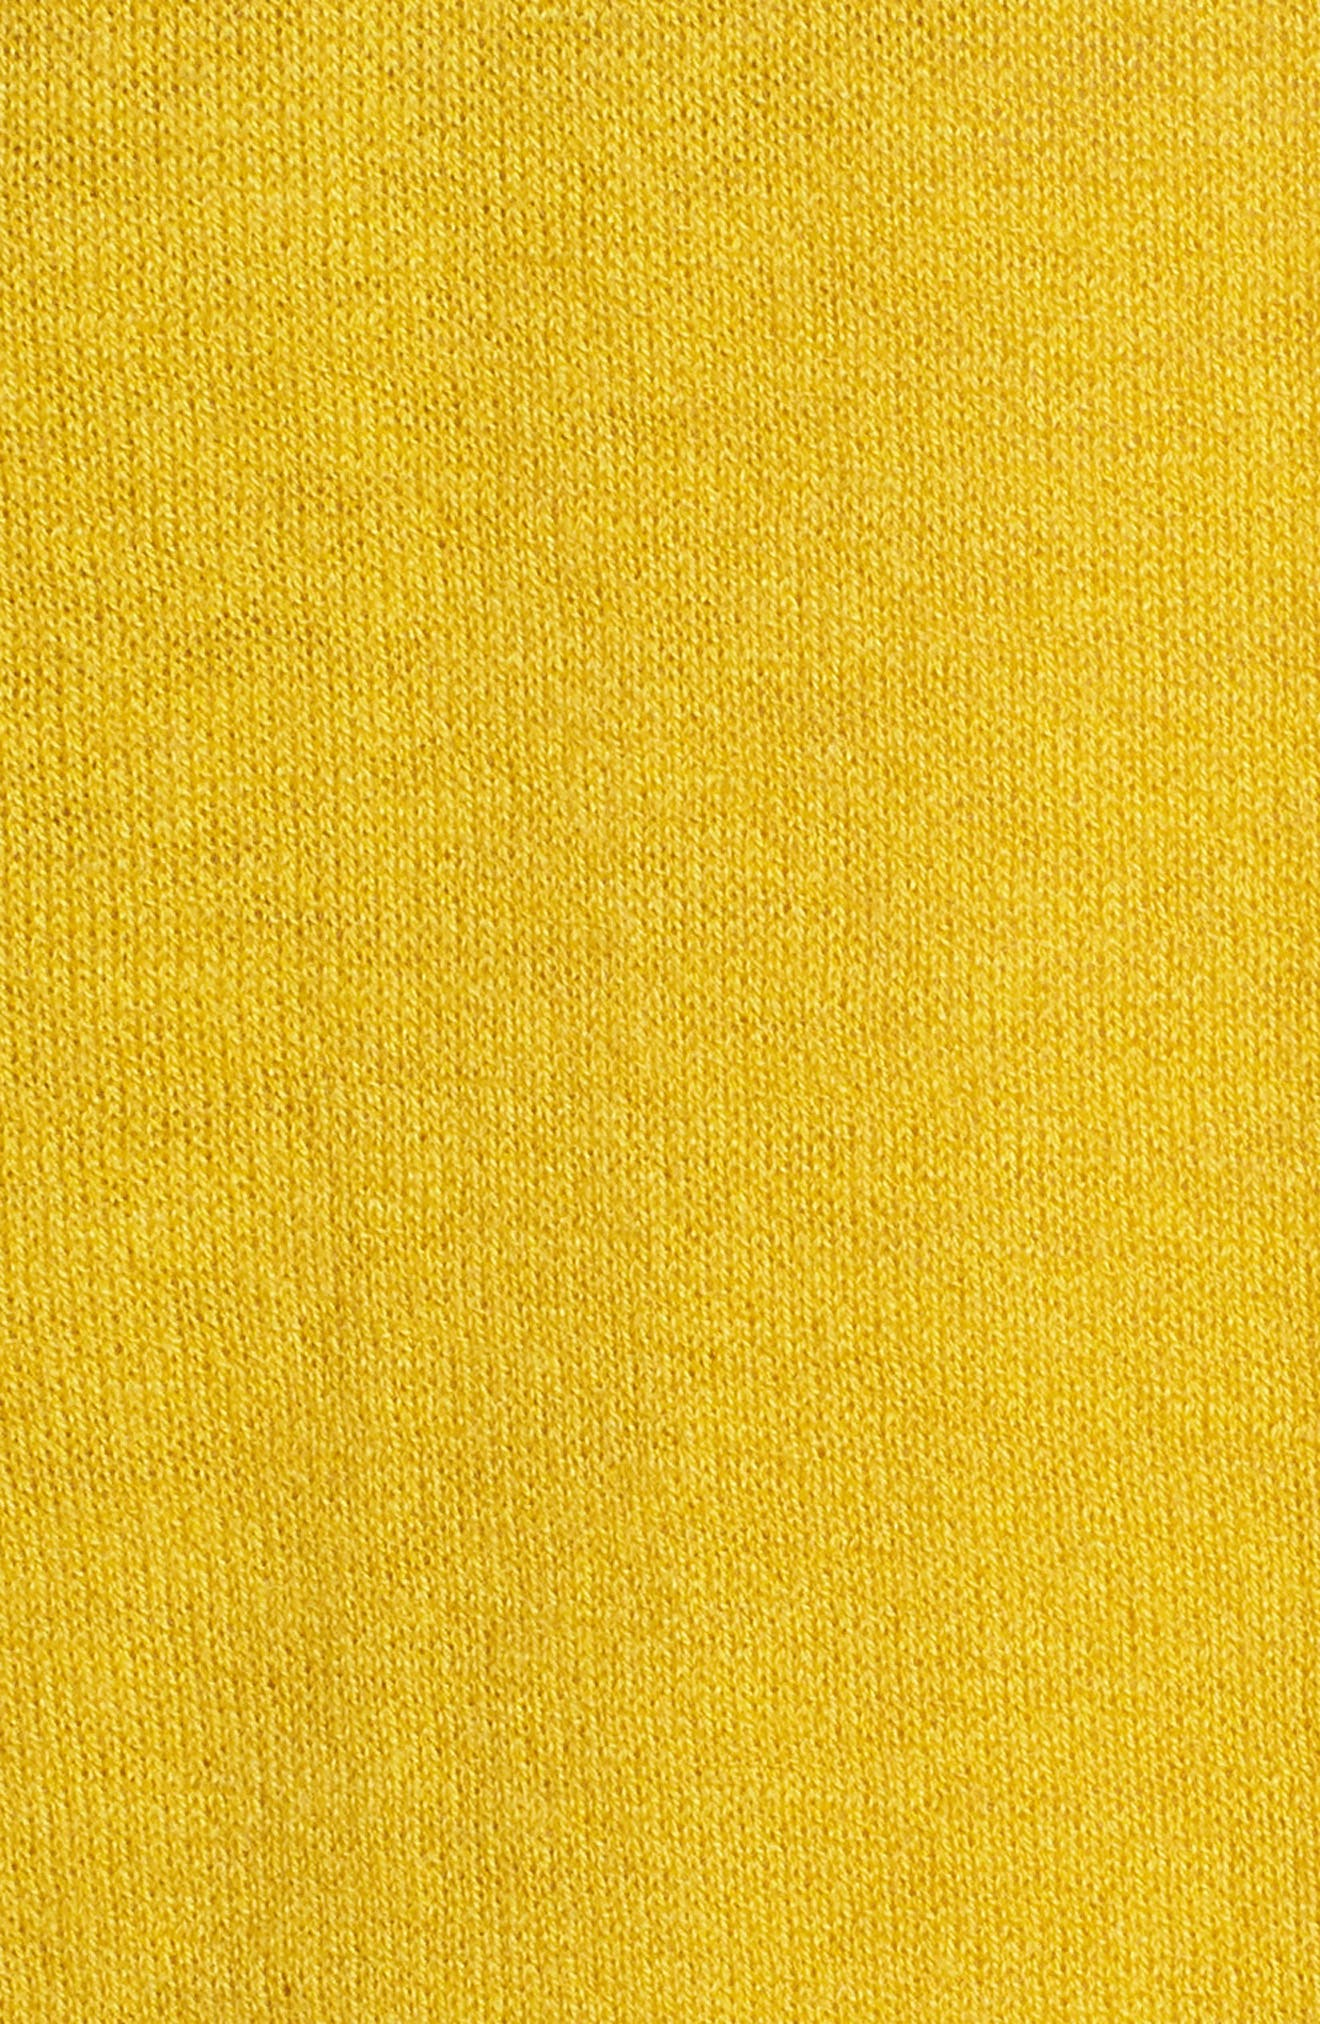 Stripe Wool & Cashmere Sweater,                             Alternate thumbnail 6, color,                             Mustard